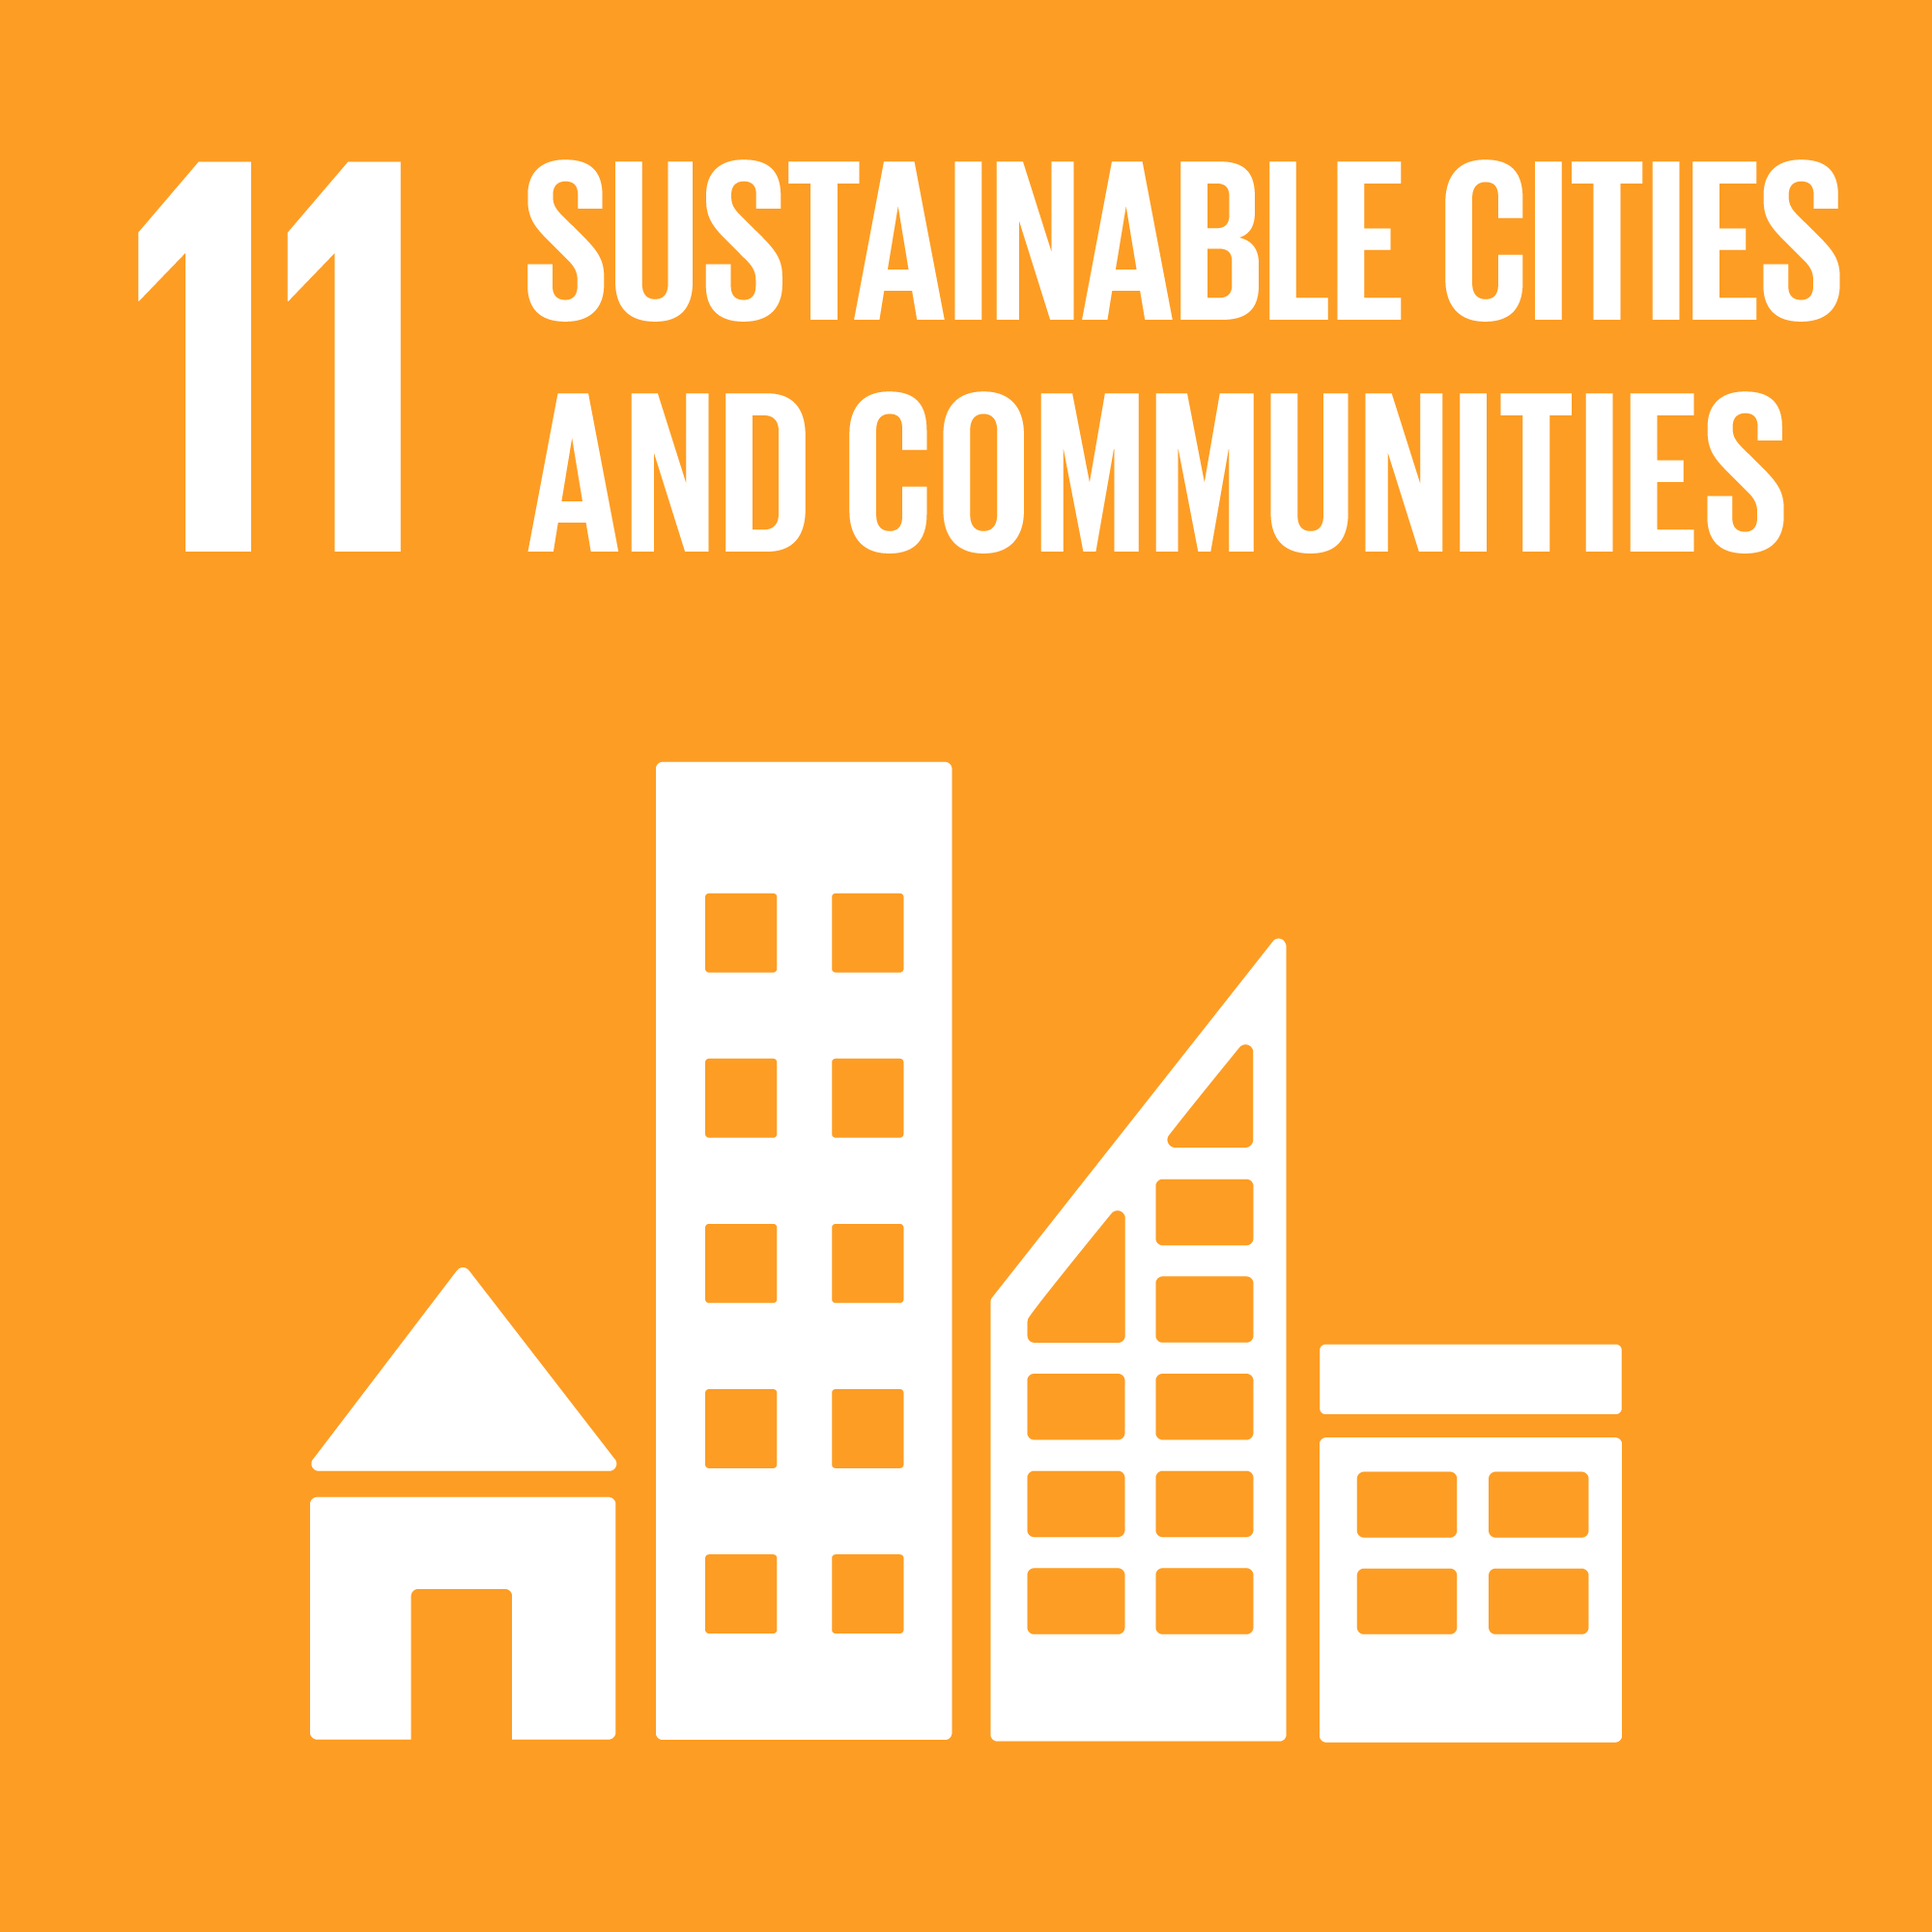 Icon for the global goals number 11, Sustainable cities and communities